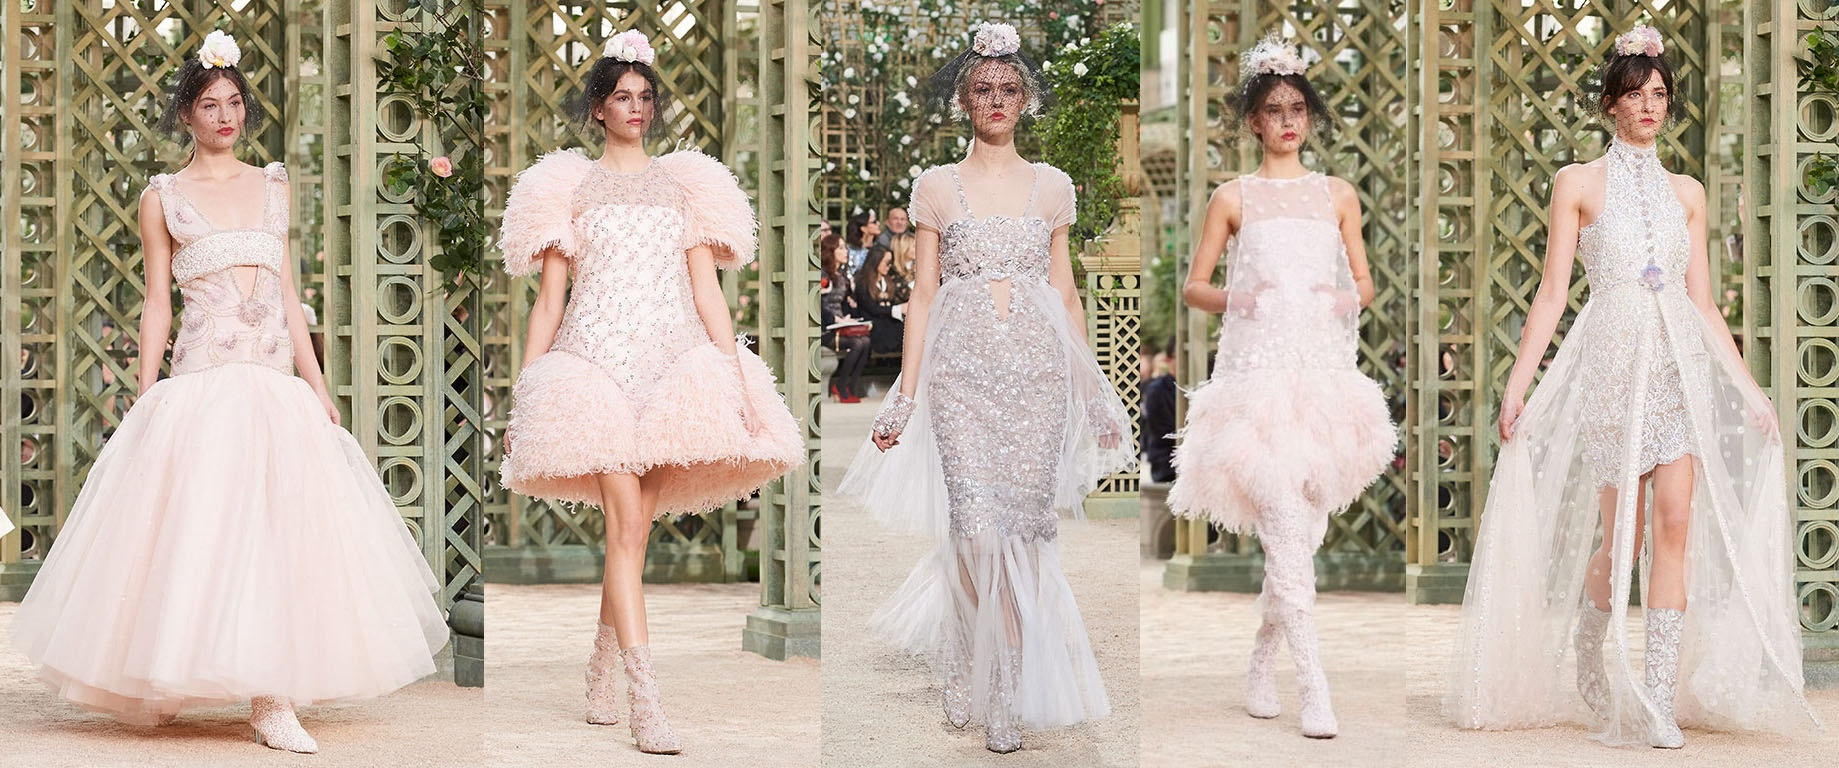 6523942a17e Bridal is one of the key areas for any Haute Couture House and Chanel has  the diversity in it s creation to bring out a variety of designs that will  suit a ...